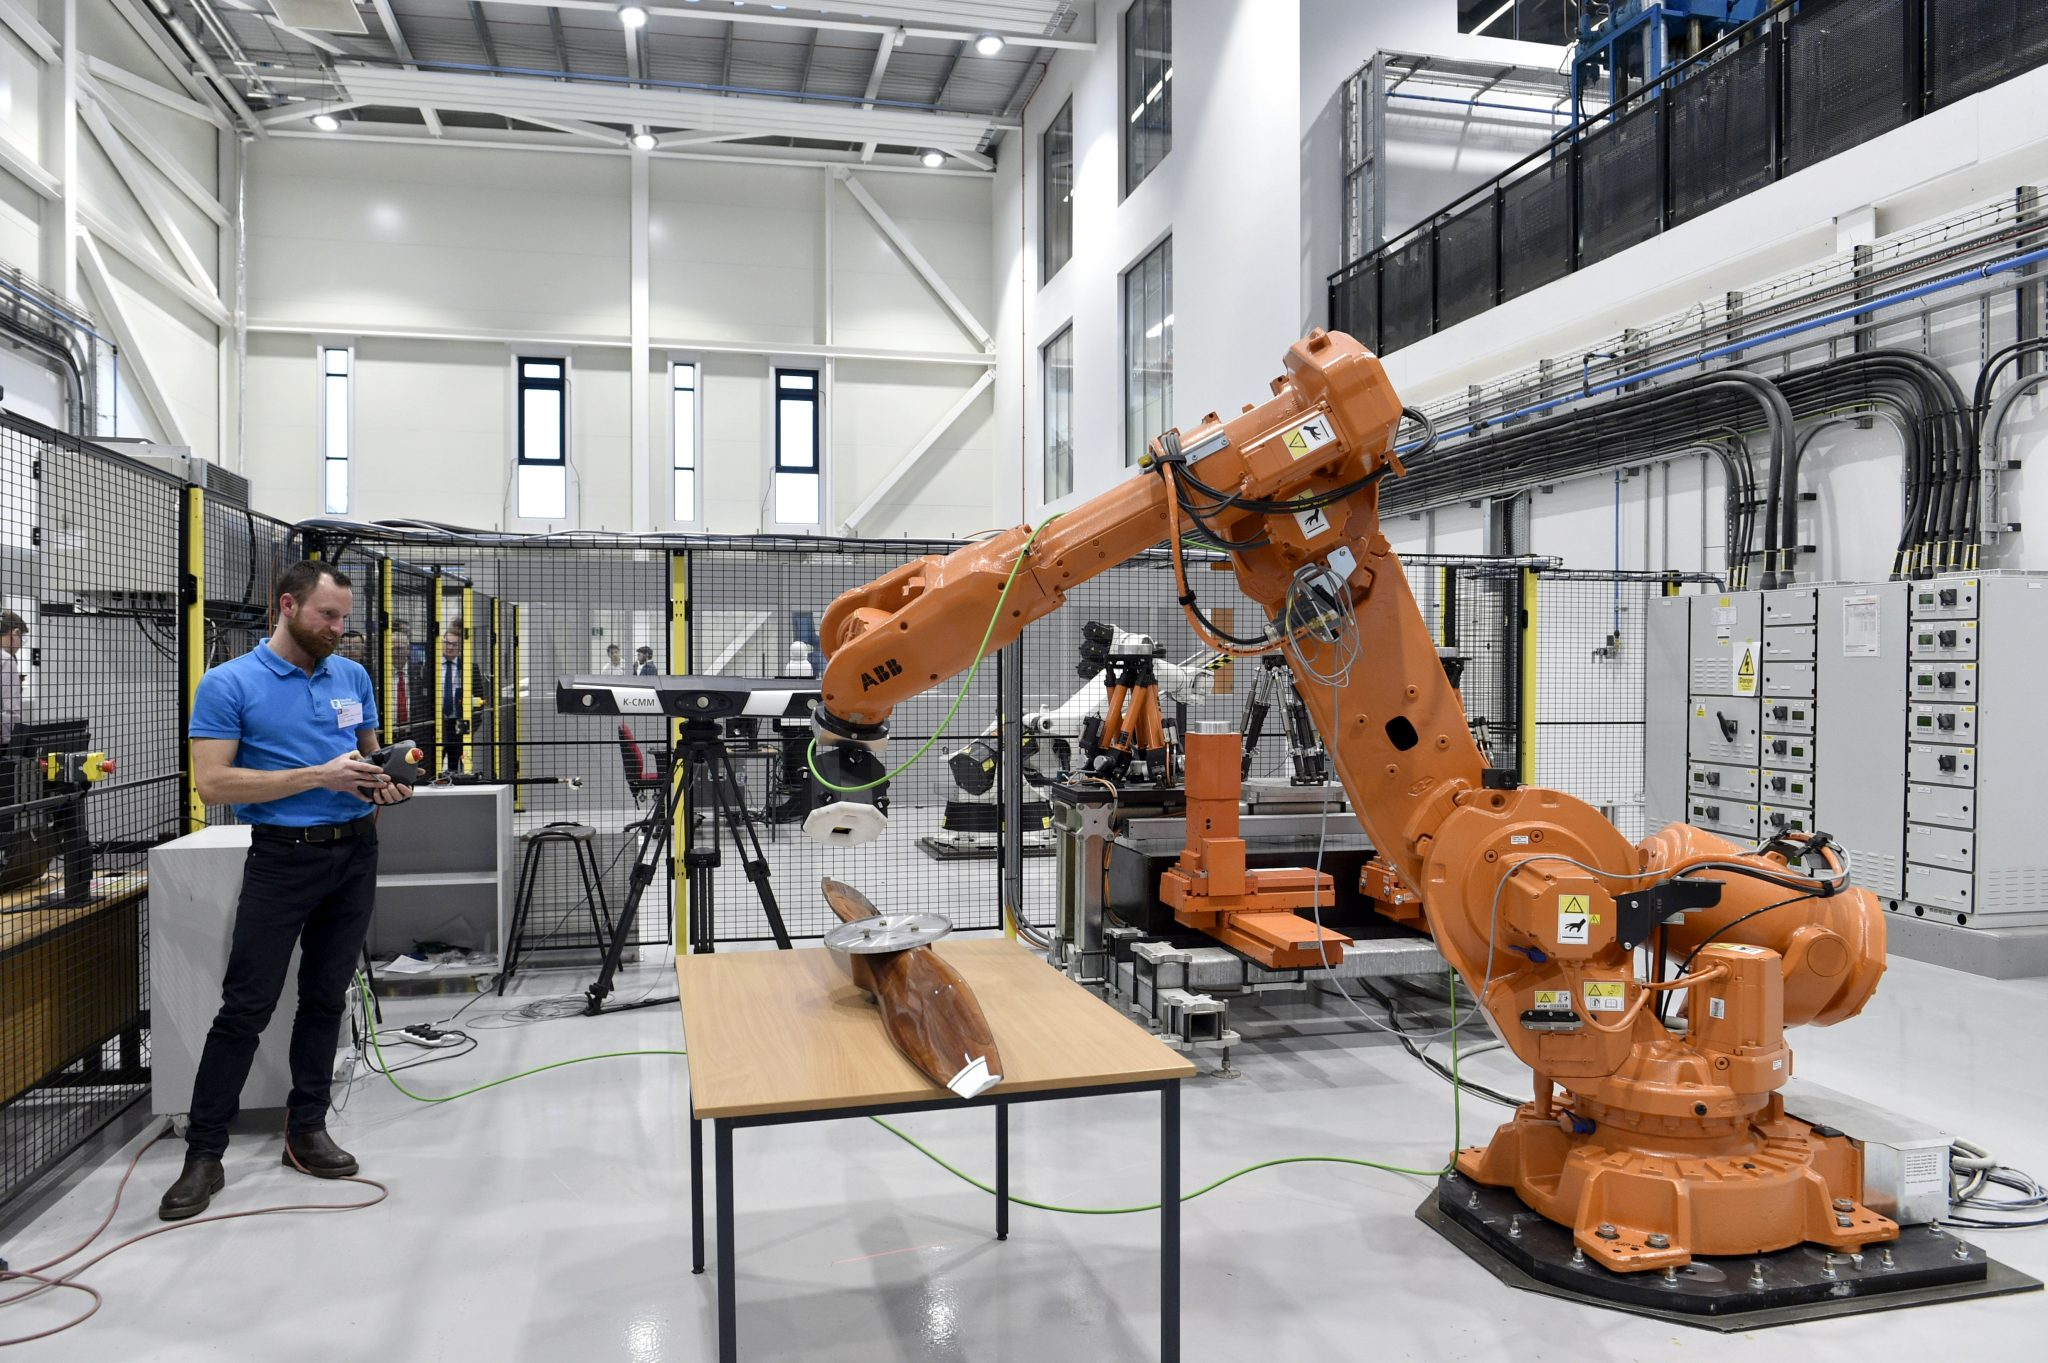 Robots at work in the Centre for Aerospace Manufacturing (CfAM) housed within the AMB. Photo via the University of Nottingham.